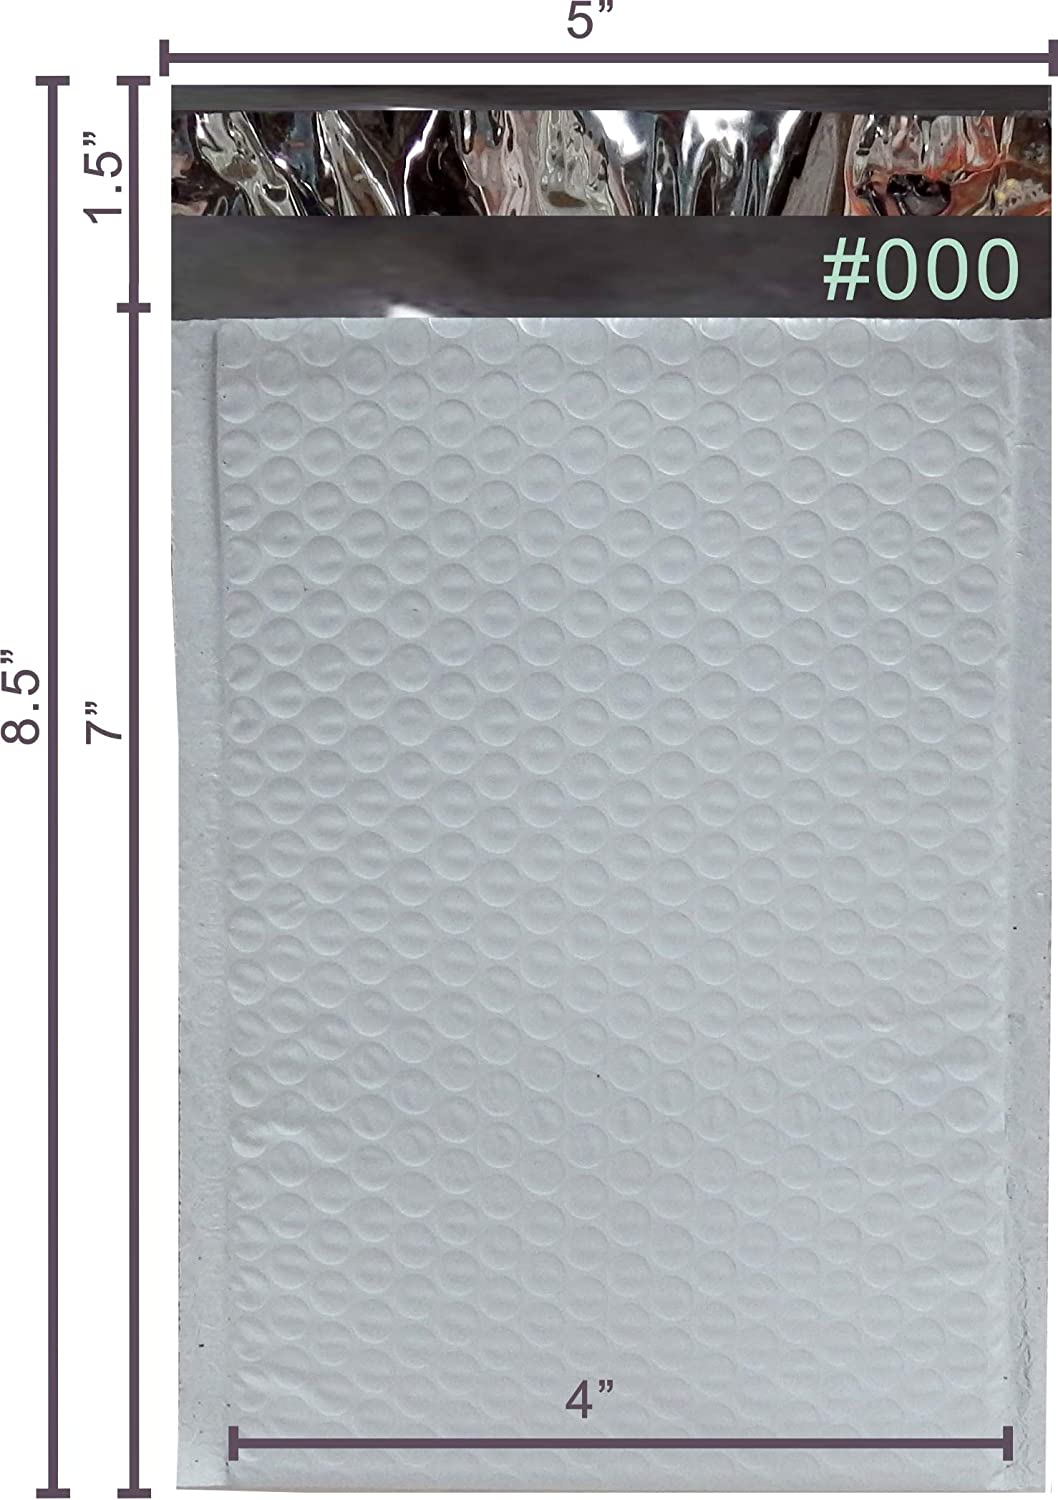 Yens SELF Seal Poly Limited price Bubble Padded PM#000 MAILERS 4X7 ENVELOPES Max 46% OFF